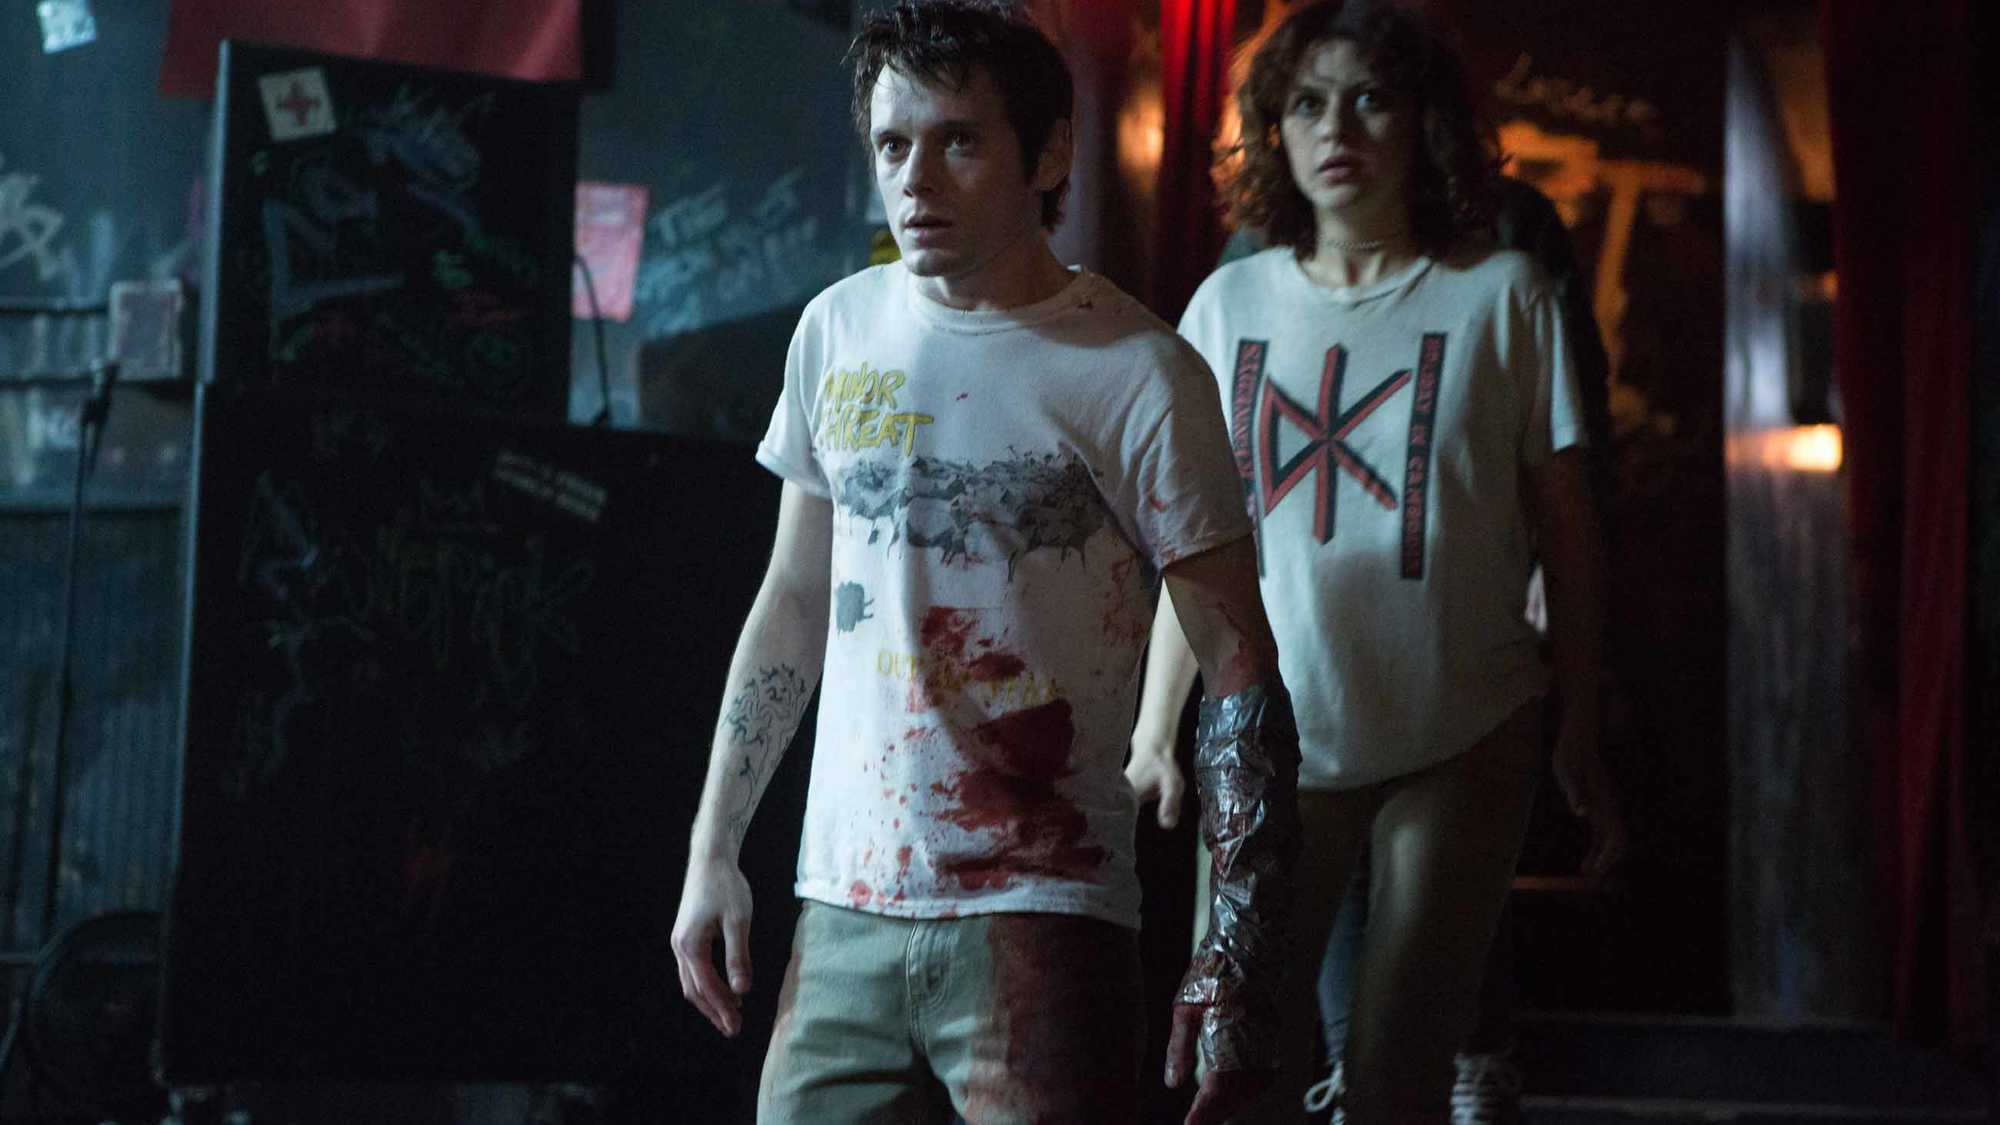 The Evil Dead Horror Movie men/'s woman/'s available t shirt white top quality